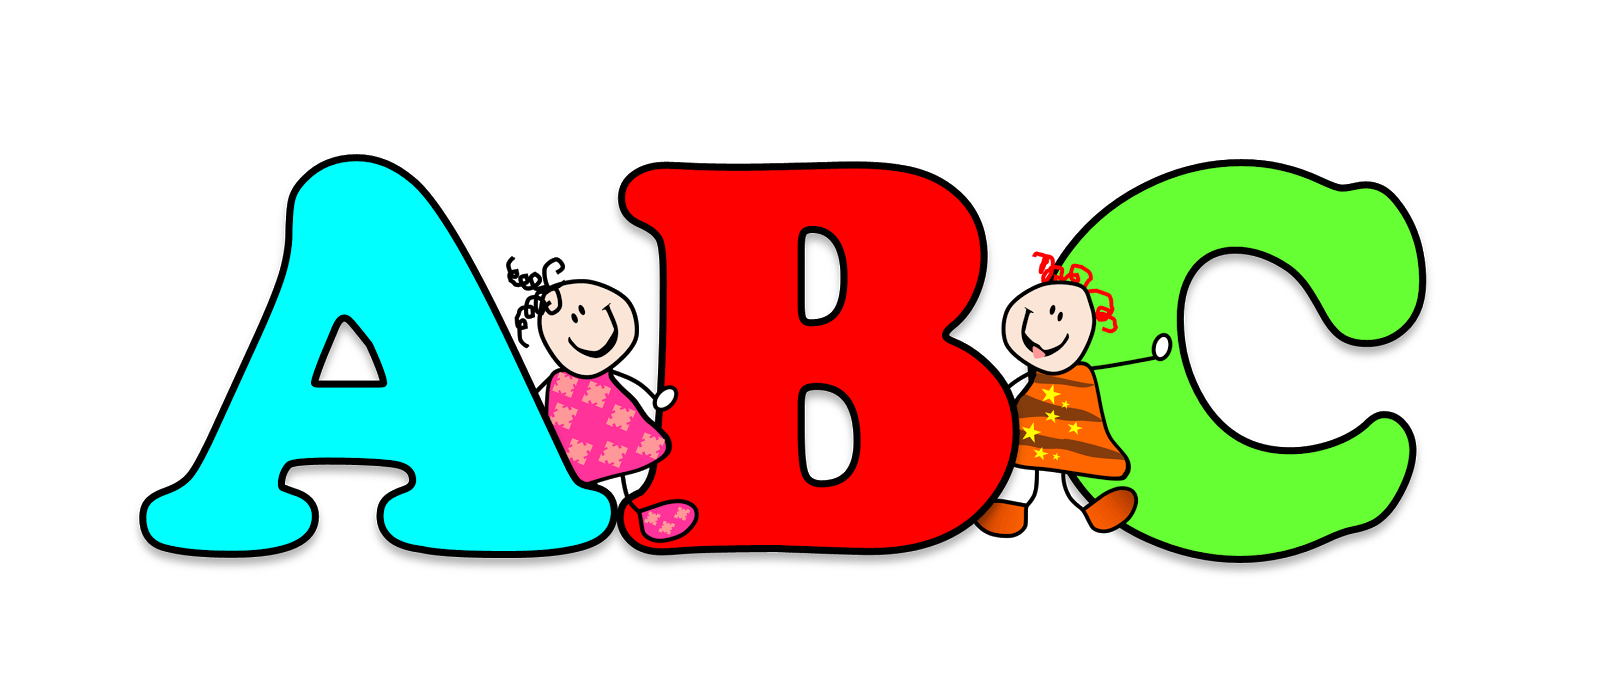 Free ABC Text Cliparts, Download Free Clip Art, Free Clip.